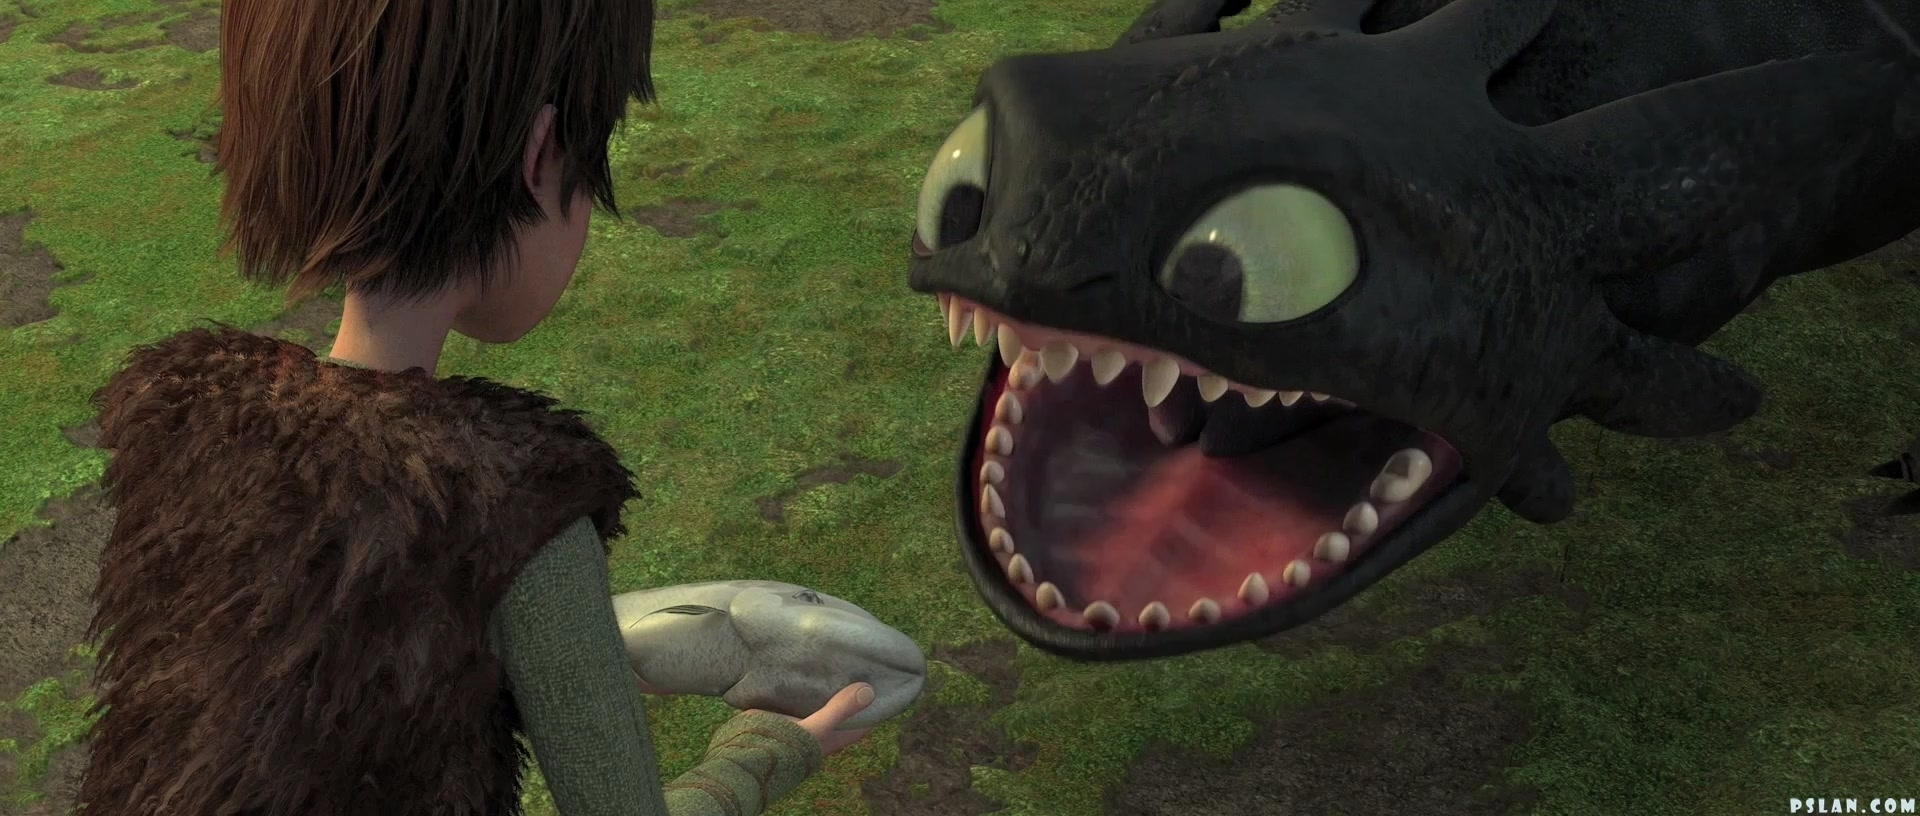 how to train your dragon 2 naked